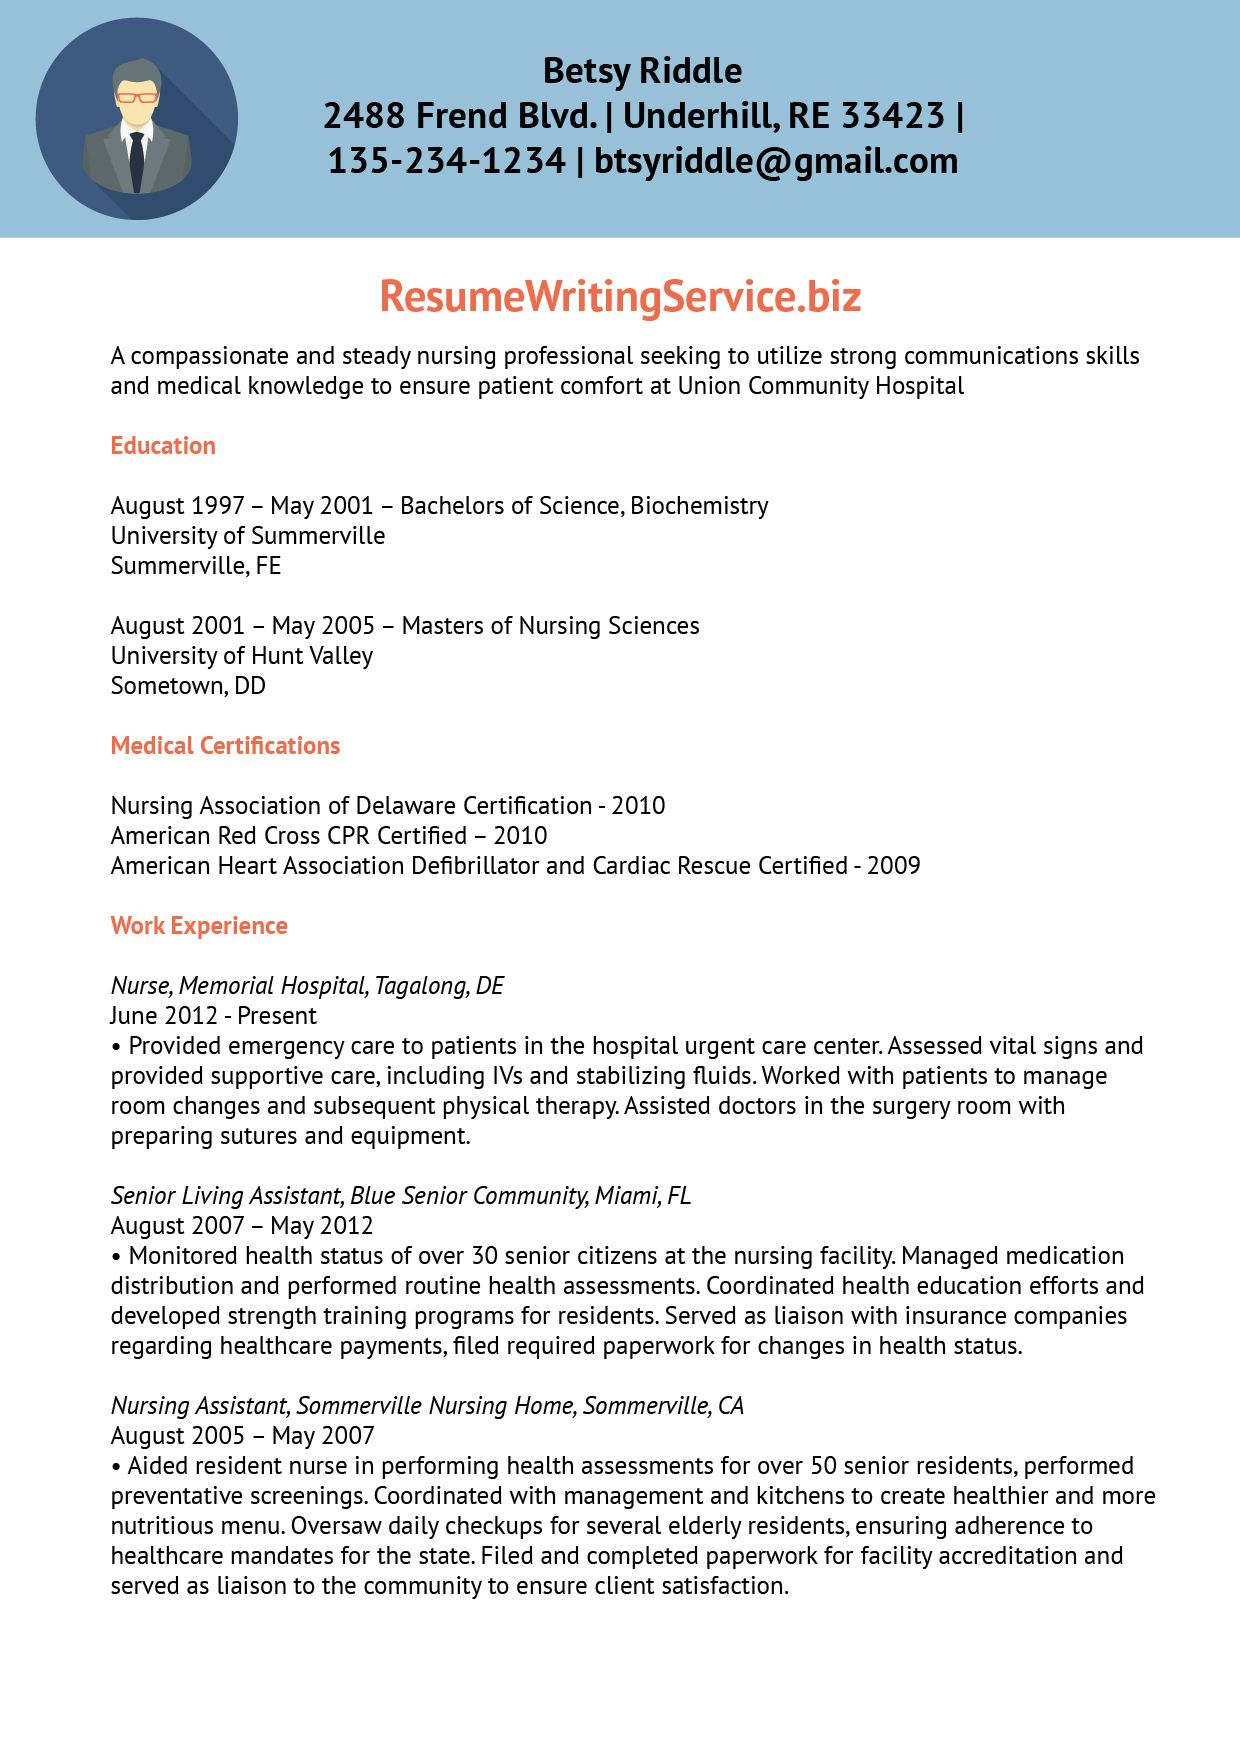 professional nursing resume writing services